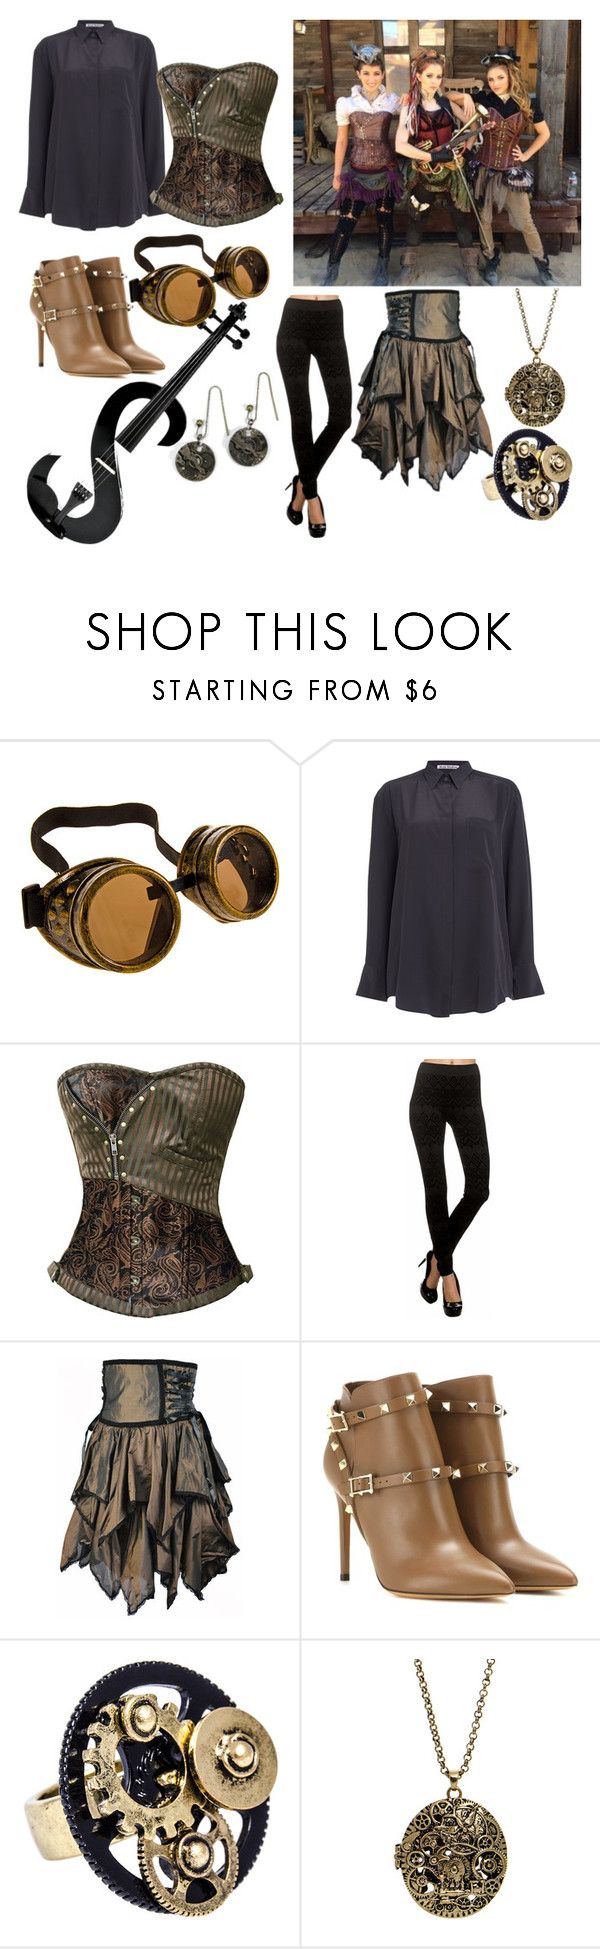 """""""Get the Look: Roundtable Rival video (Lindsey Stirling)"""" by thatwwefangirl ❤ liked on Polyvore featuring Acne Studios, Valentino, women's clothing, women's fashion, women, female, woman, misses and juniors"""